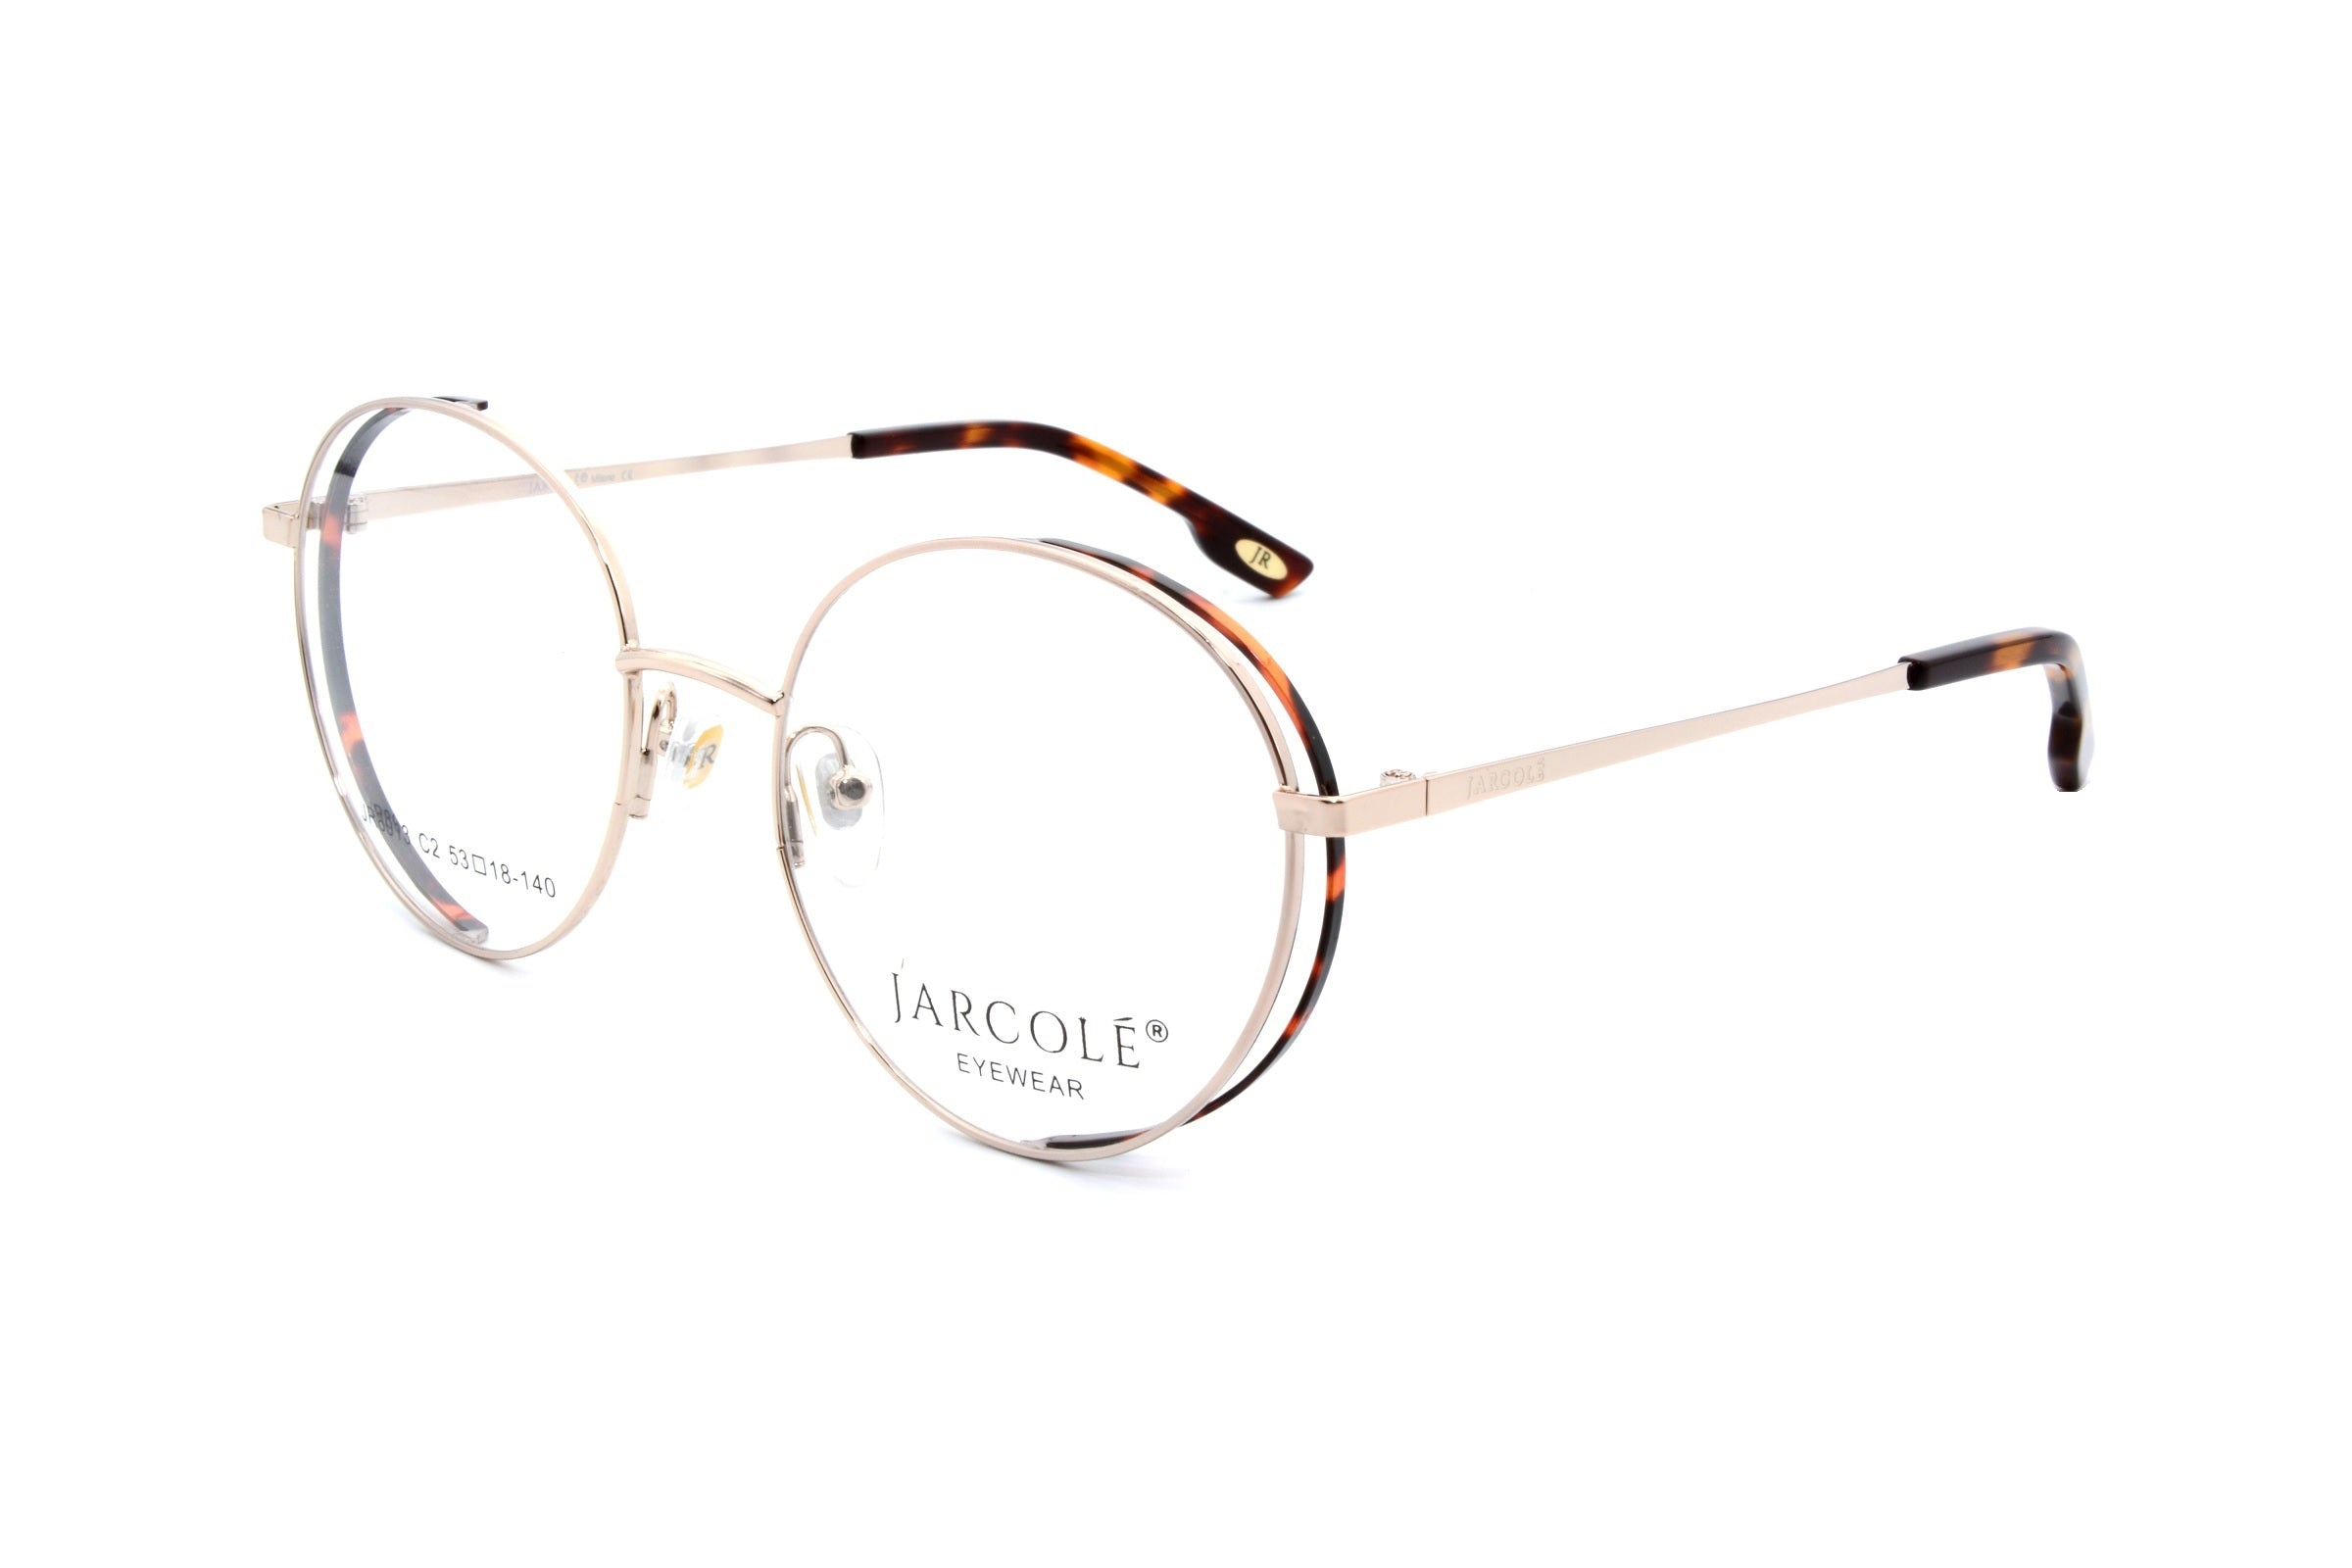 Jarcole eyewear 8013, C2 - Optics Trading